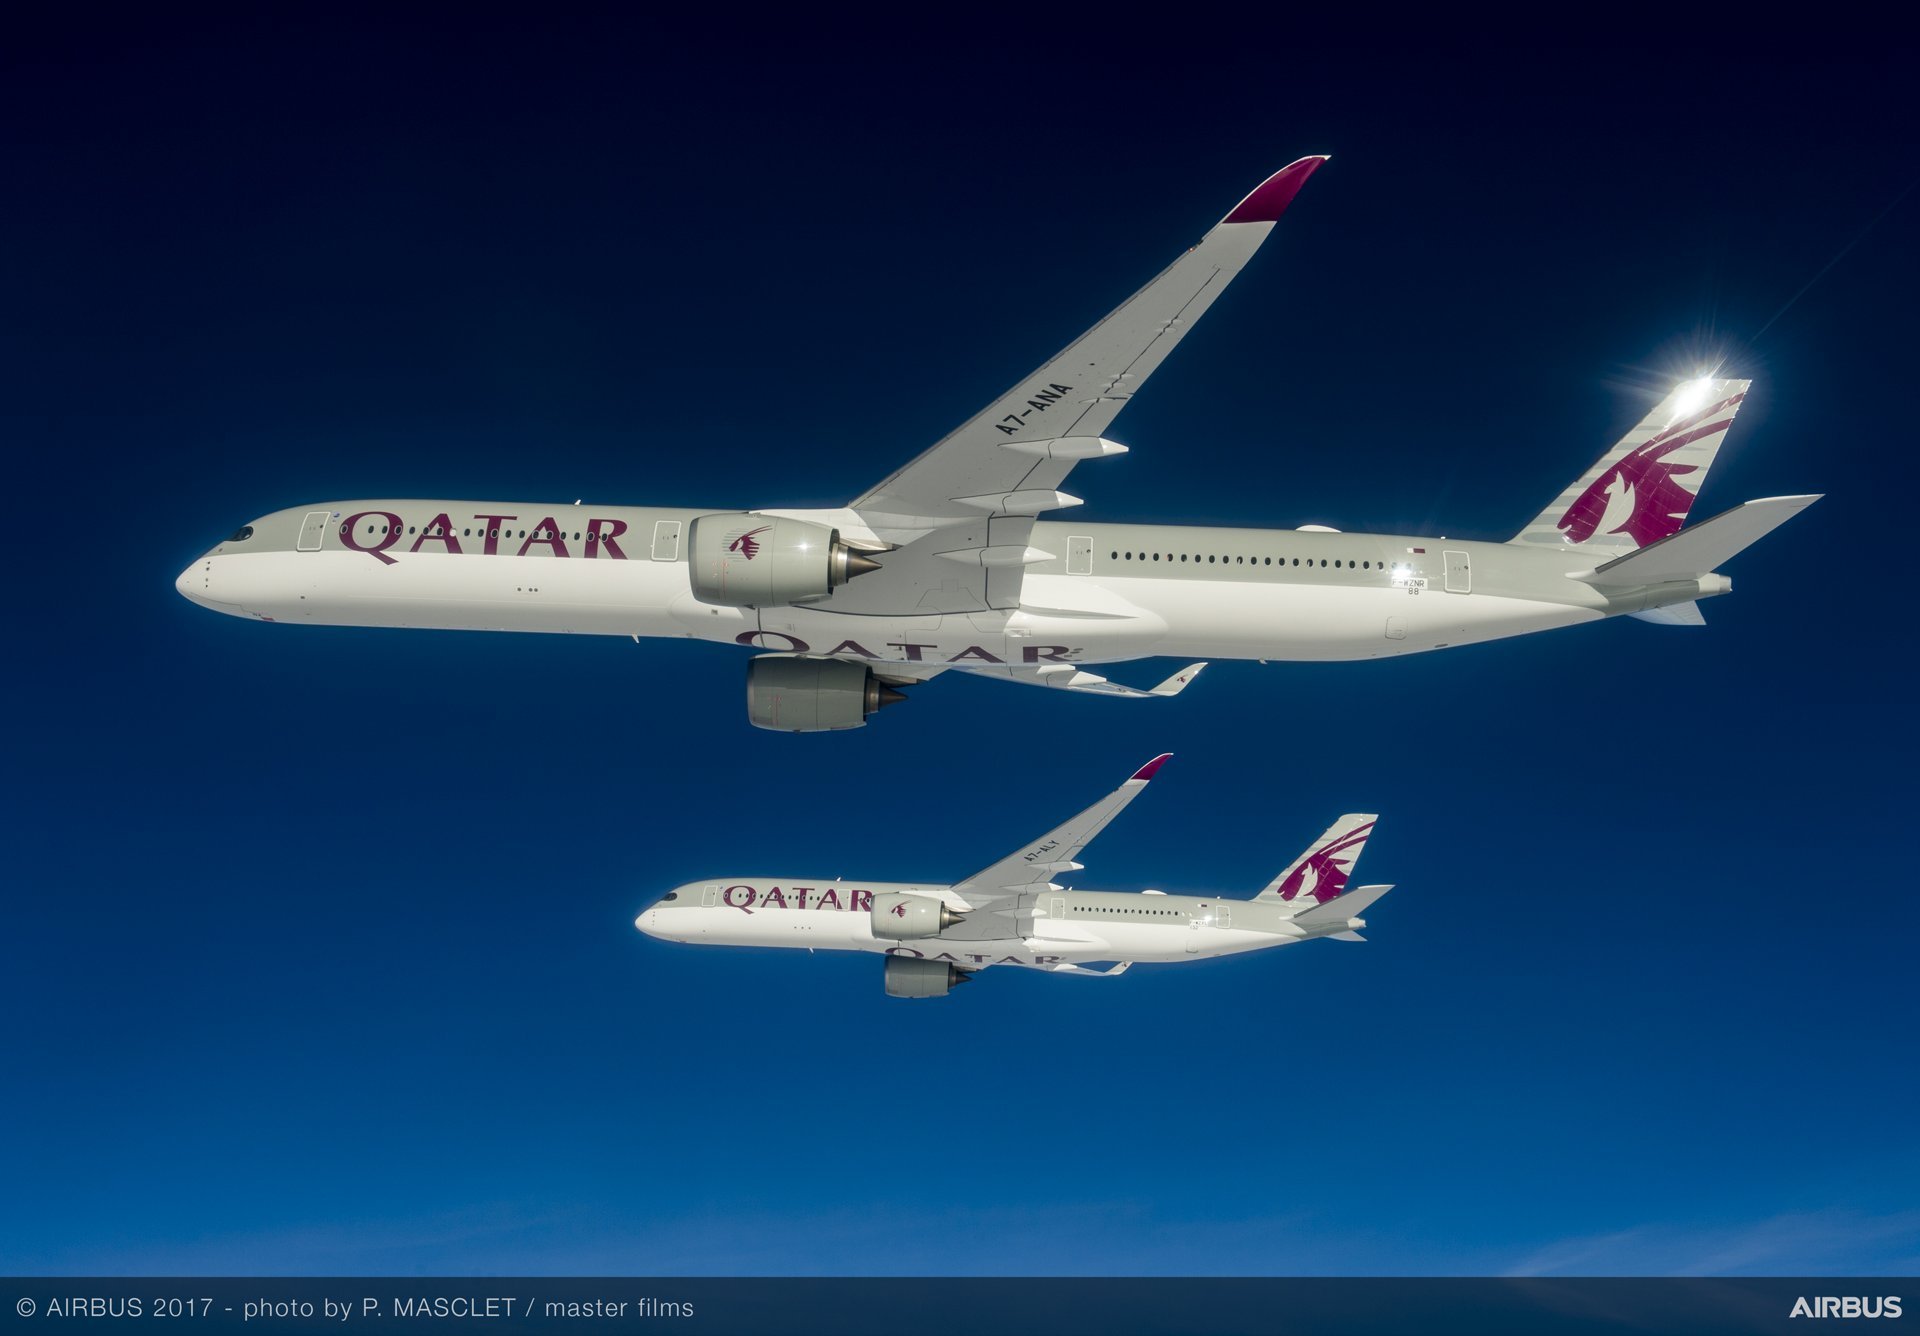 With Airbus' handover of the first-delivered A350-1000 to Qatar Airways, the longer-fuselage A350 XWB joins this airline's in-service fleet A350-900 versions